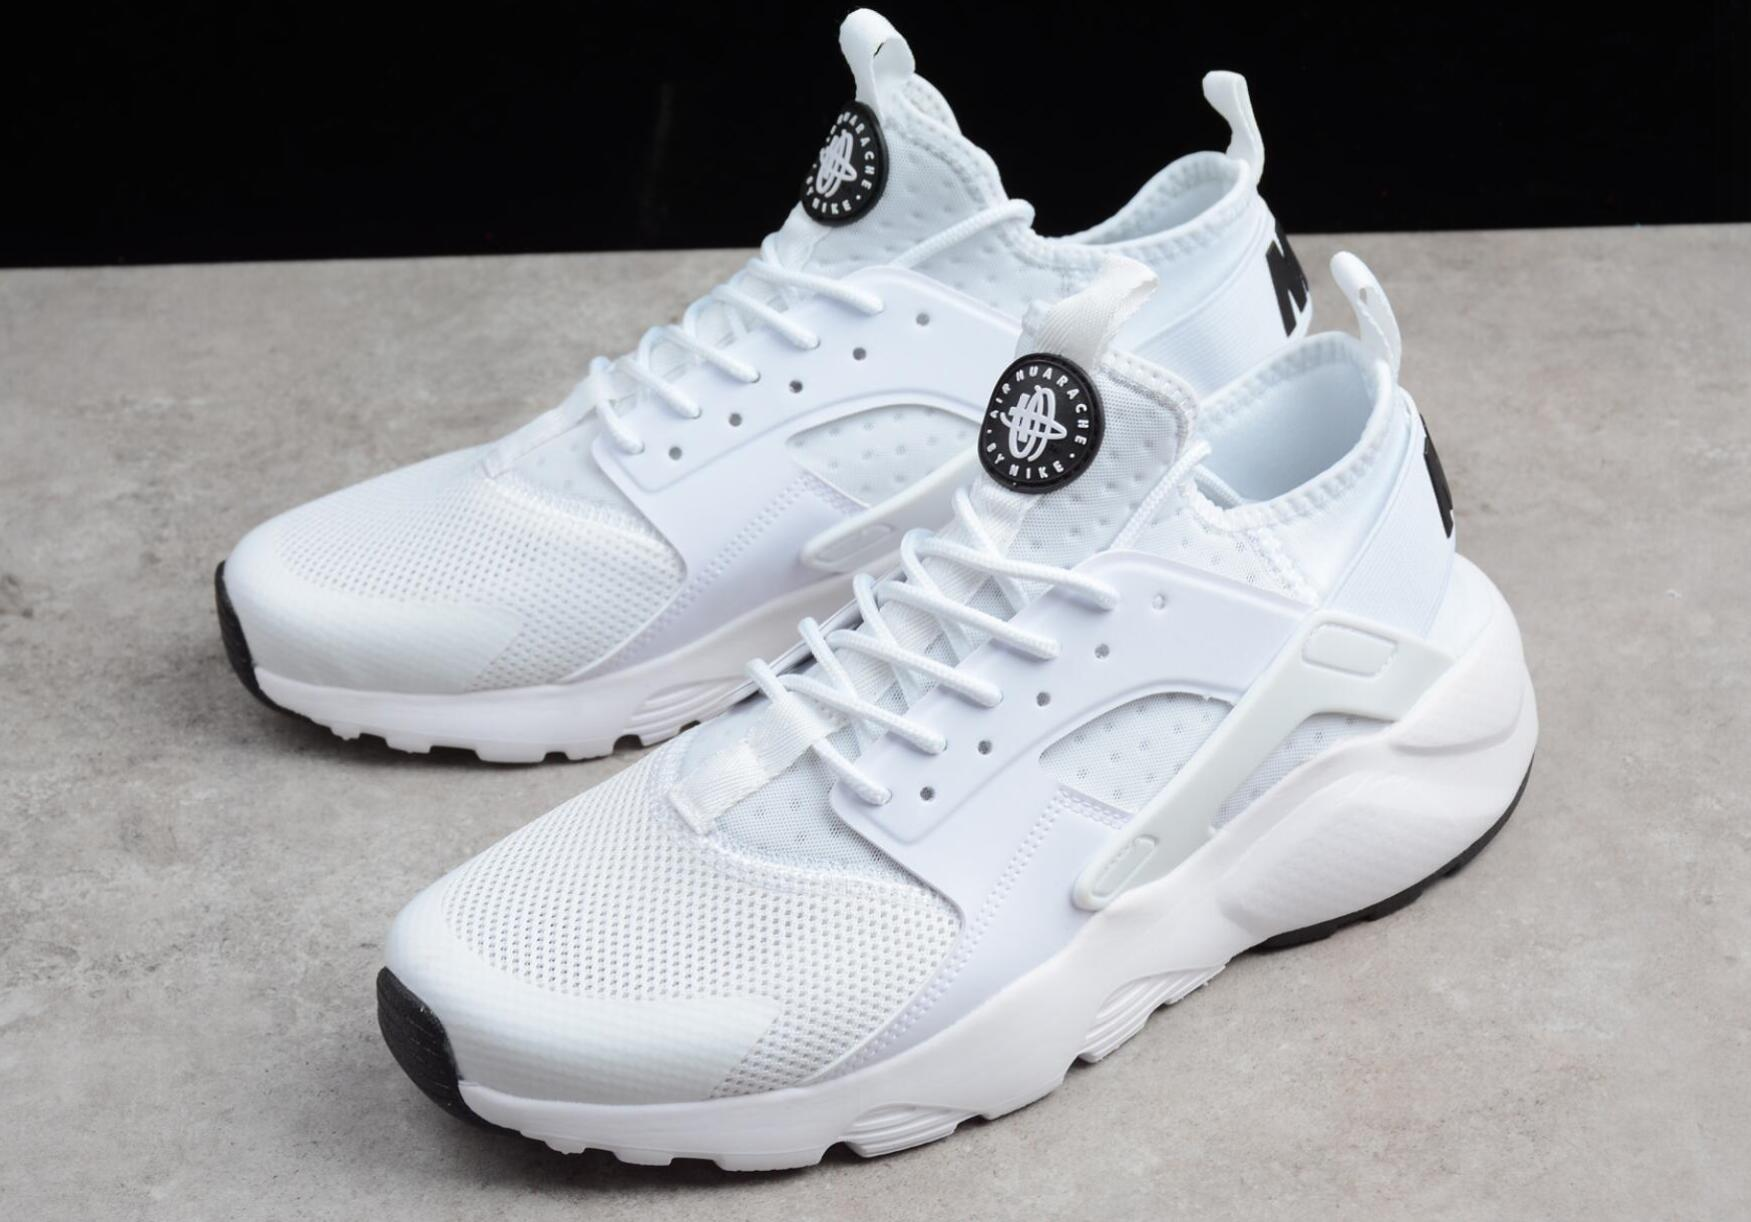 super popular d22bb 92e44 2019 Huarache run ultra Huarache 4.0 1.0 trail hoes off Triple white black  trainers for men tn women outdoors shoes sneakers